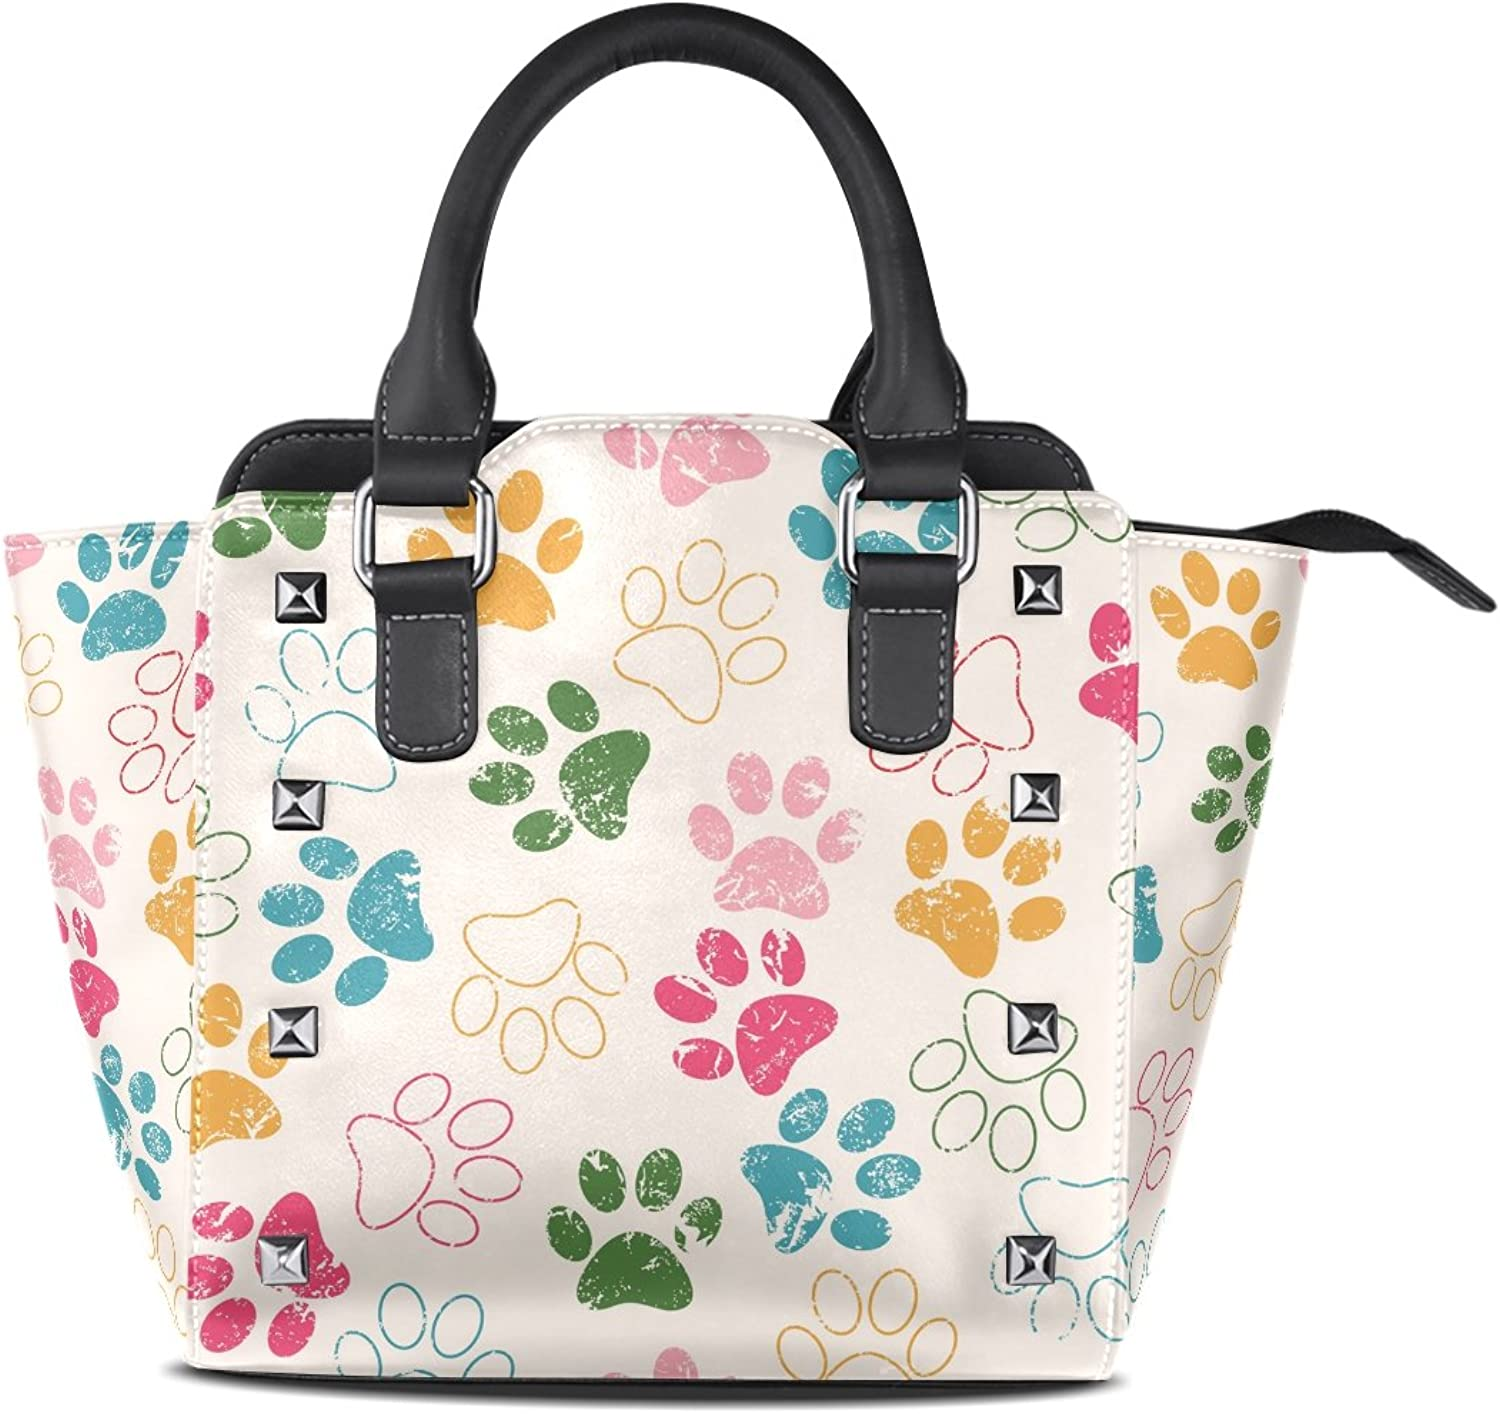 Sunlome Cat Dog Grunge Paws Footprints Print Women's Leather Tote Shoulder Bags Handbags